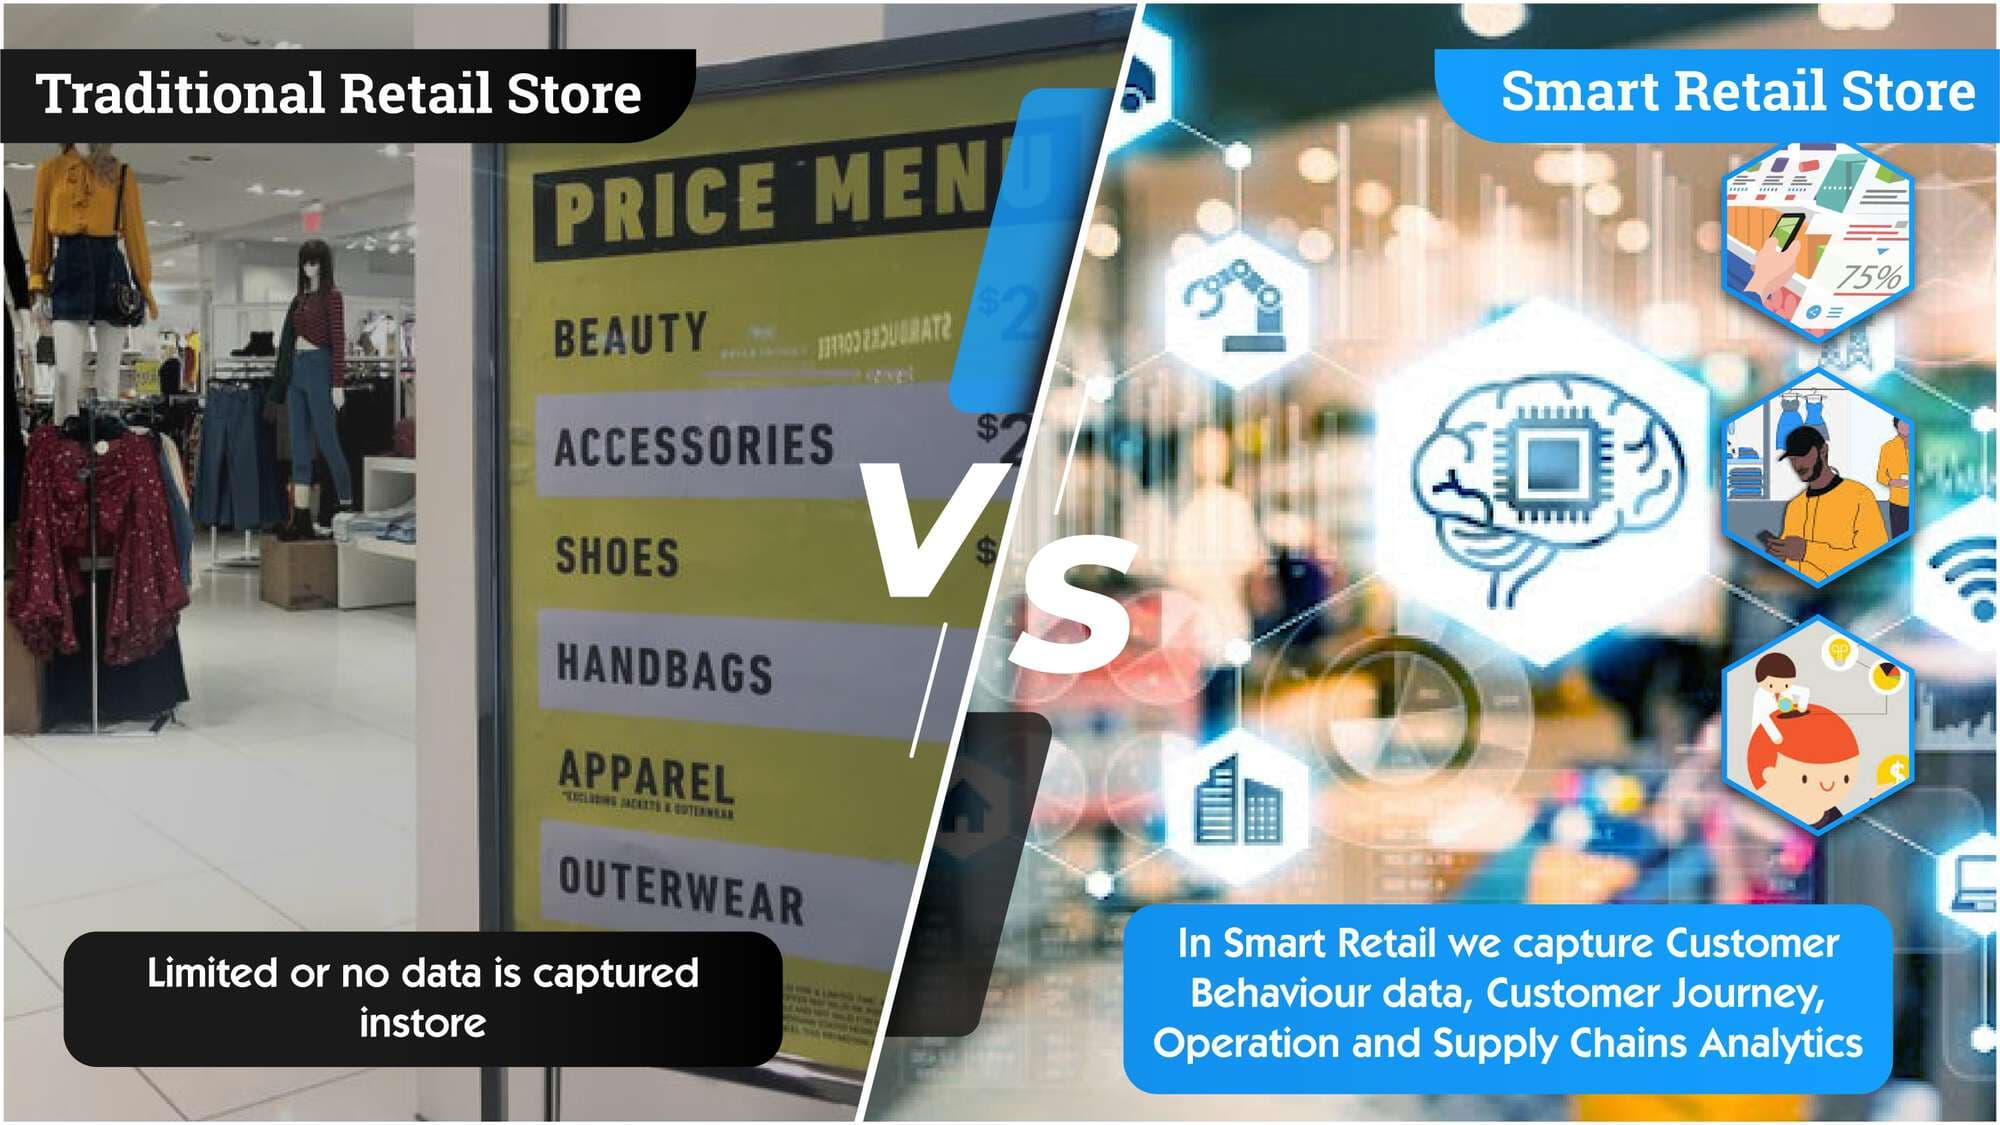 B2b2c Solutions -Smart Retail Solution with Iot & AI